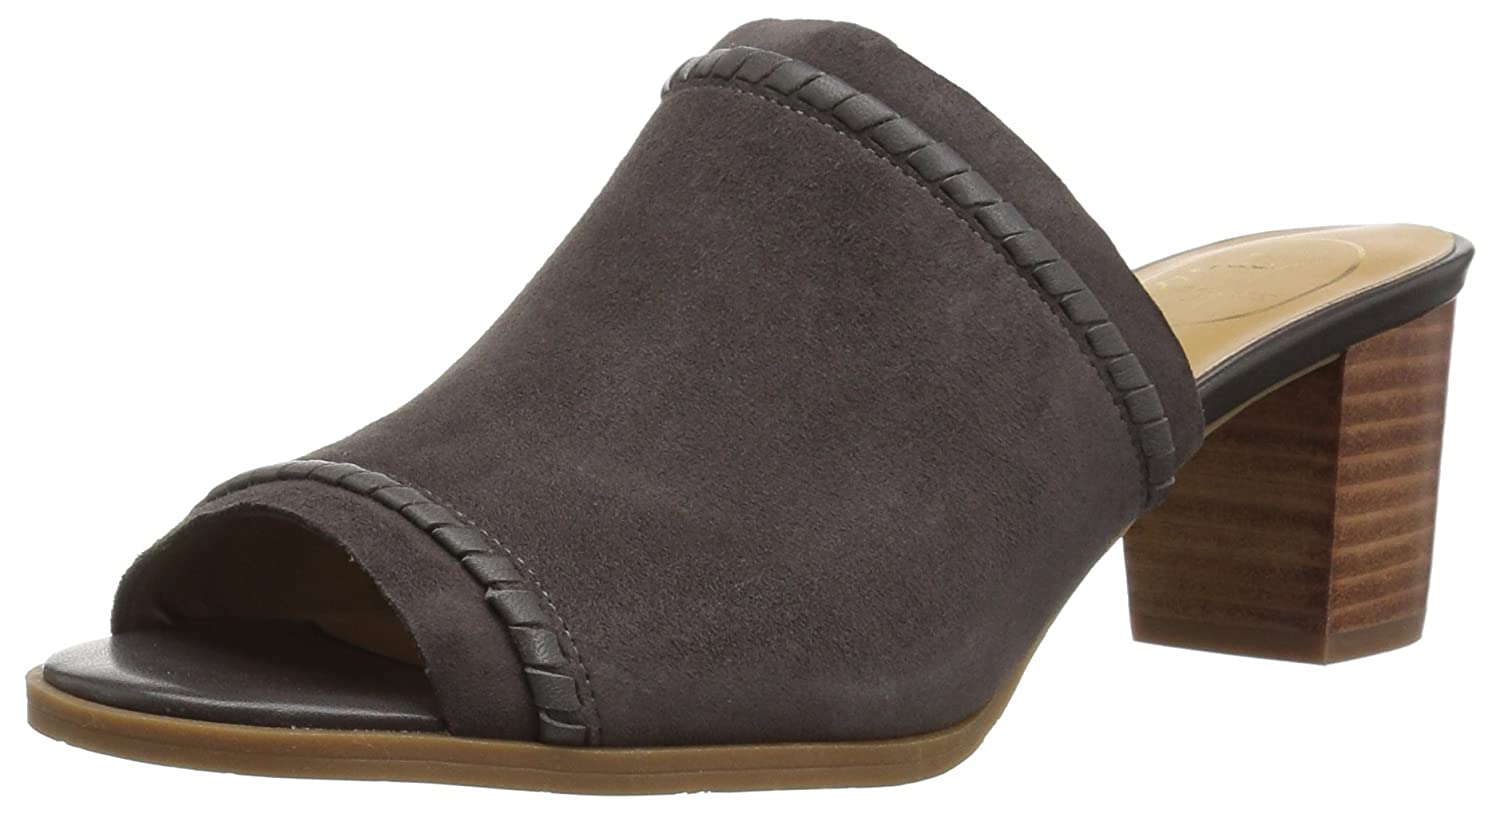 Jack Rogers Women's Campbell Suede Slide Sandal B078WZCBR3 8 M US|Charcoal Suede